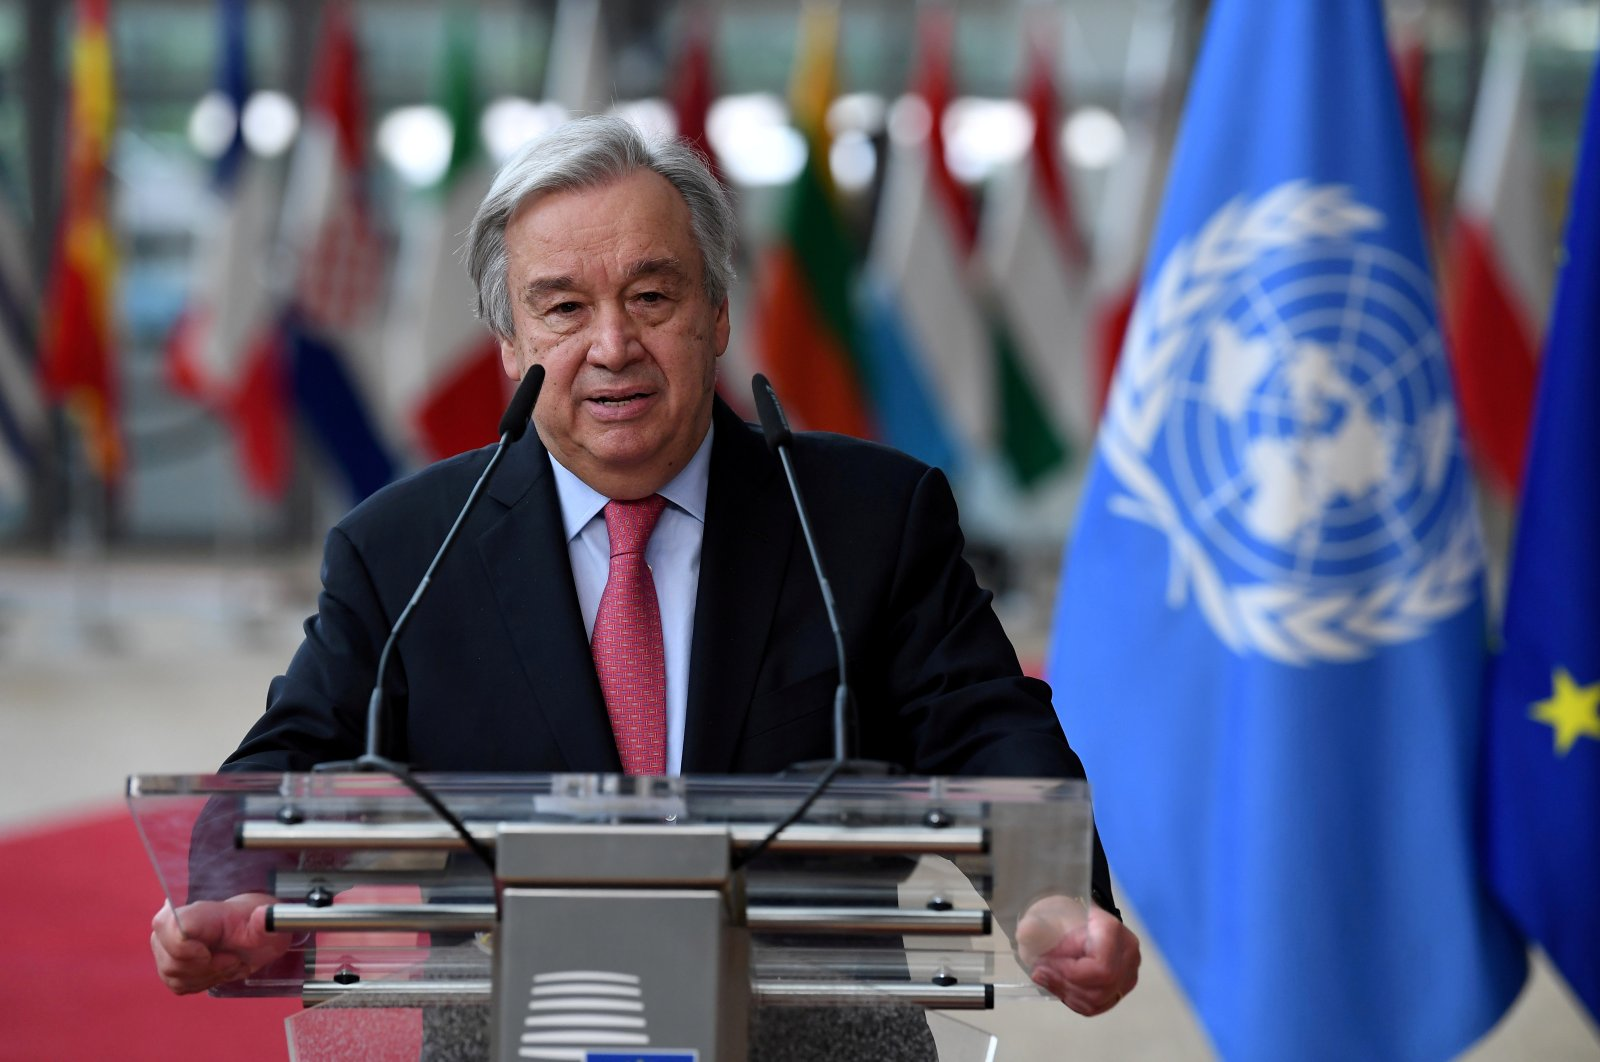 Secretary-General of the U.N. Antonio Guterres addresses the media as he arrives on the first day of the European Union summit at the European Council Building in Brussels, Belgium, June 24, 2021. (REUTERS Photo)